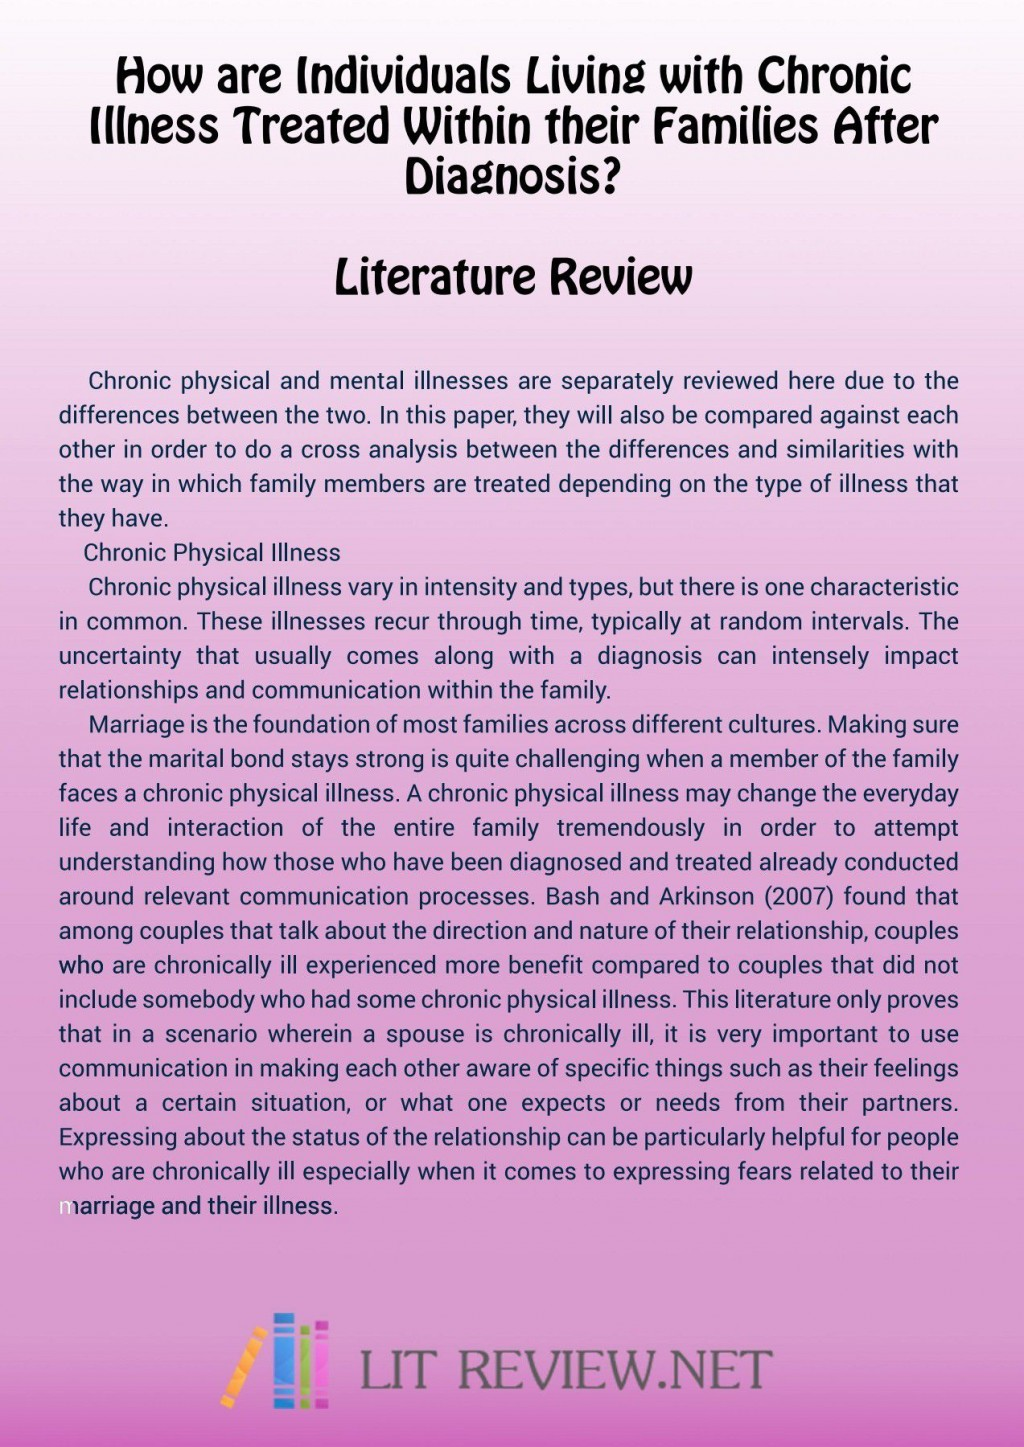 000 Wonderful Literature Review Example Apa Image  Style 6th Edition 7thLarge